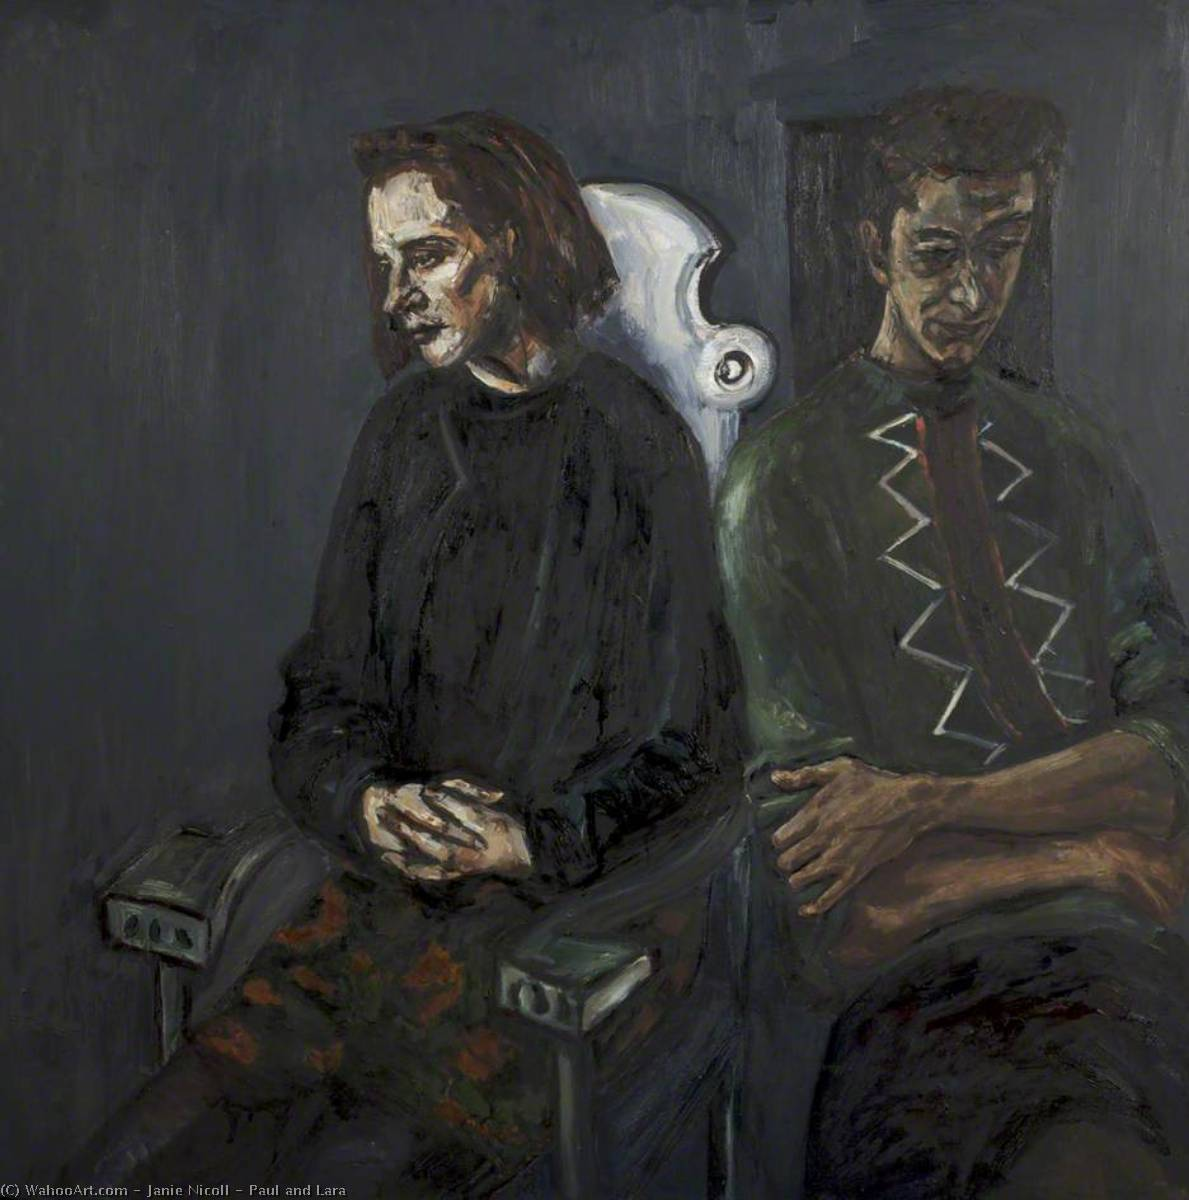 Paul and Lara, Oil On Canvas by Janie Nicoll